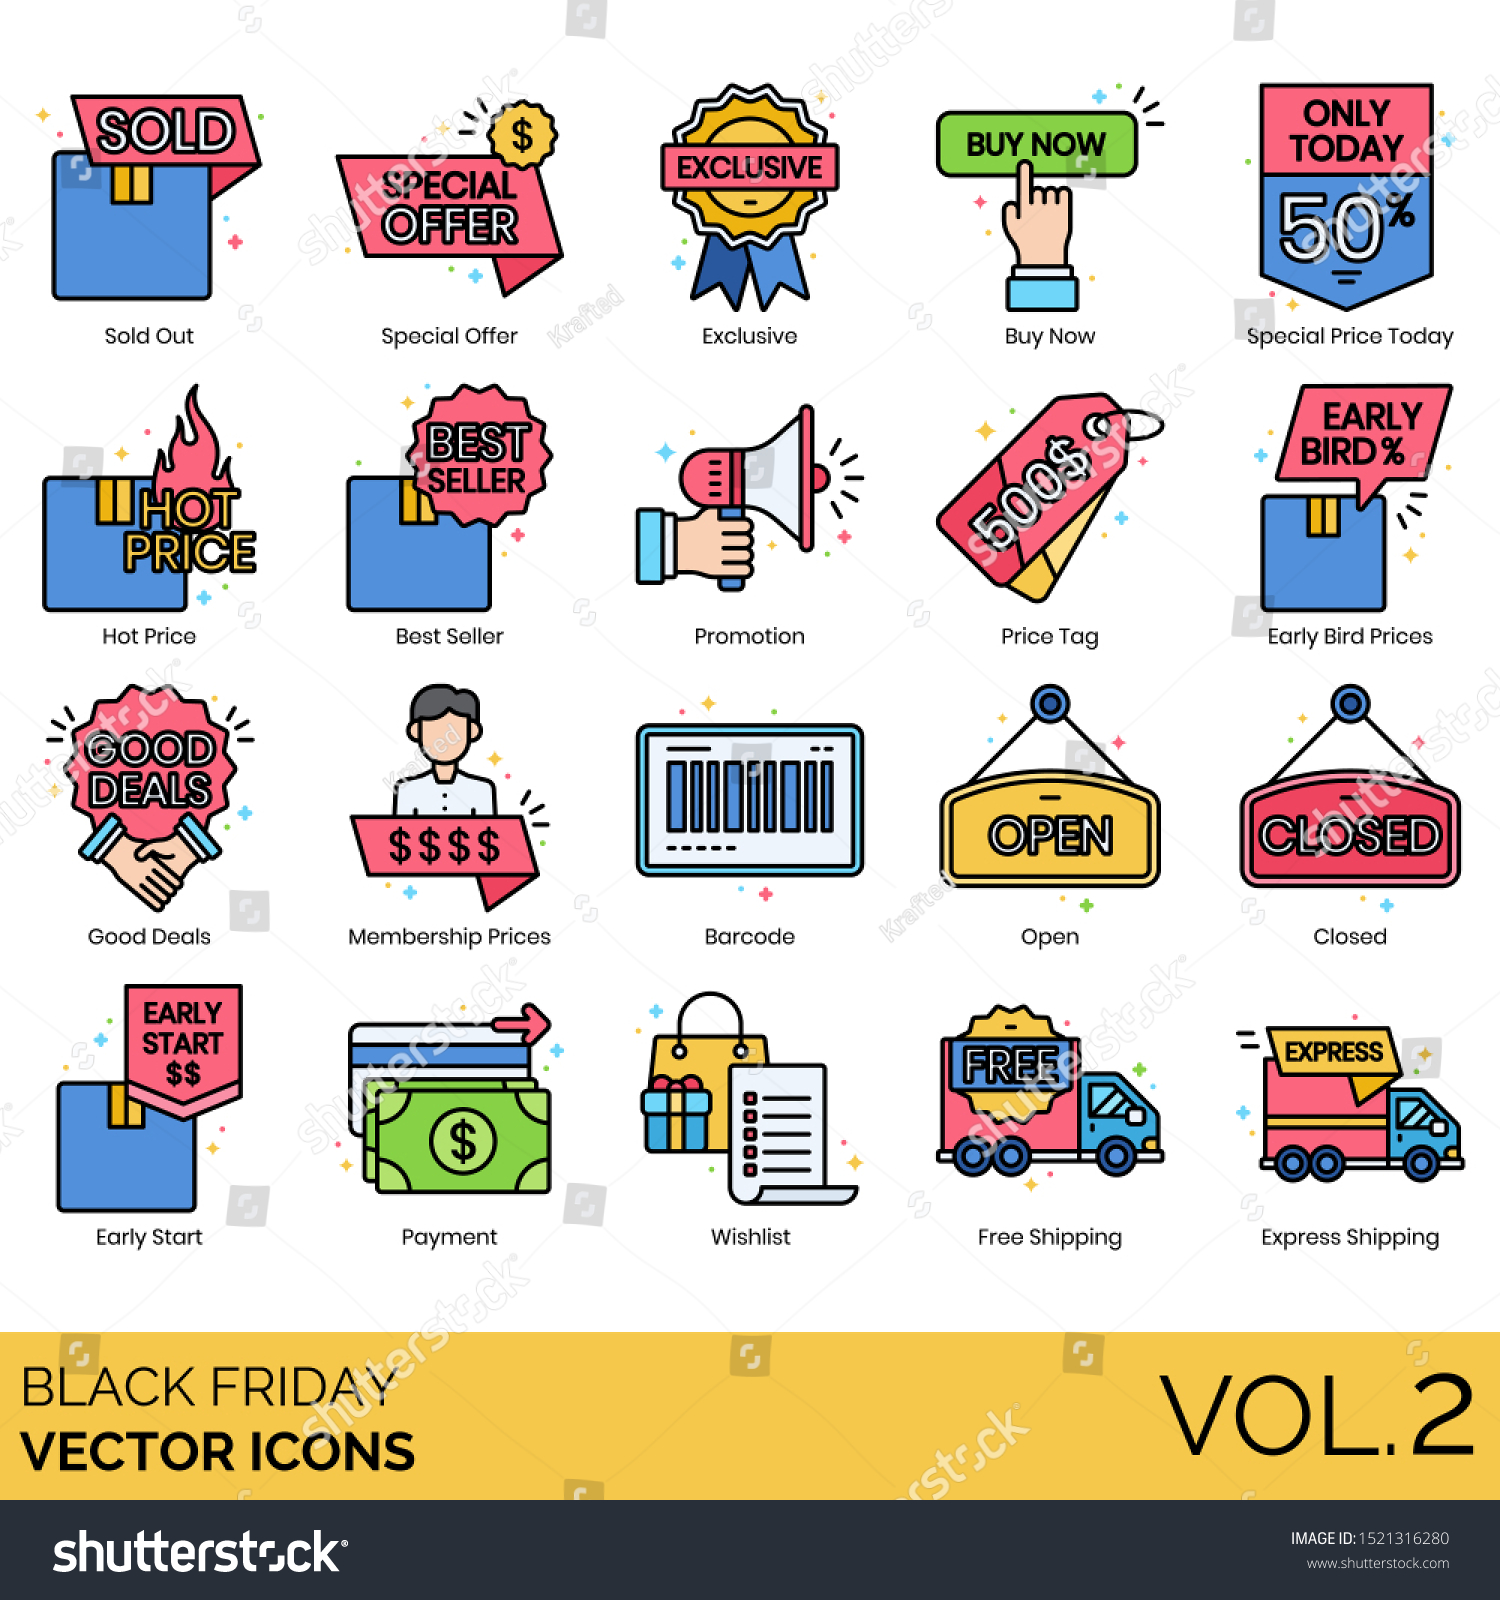 Black Friday Icons Including Sold Out Stock Vector Royalty Free 1521316280